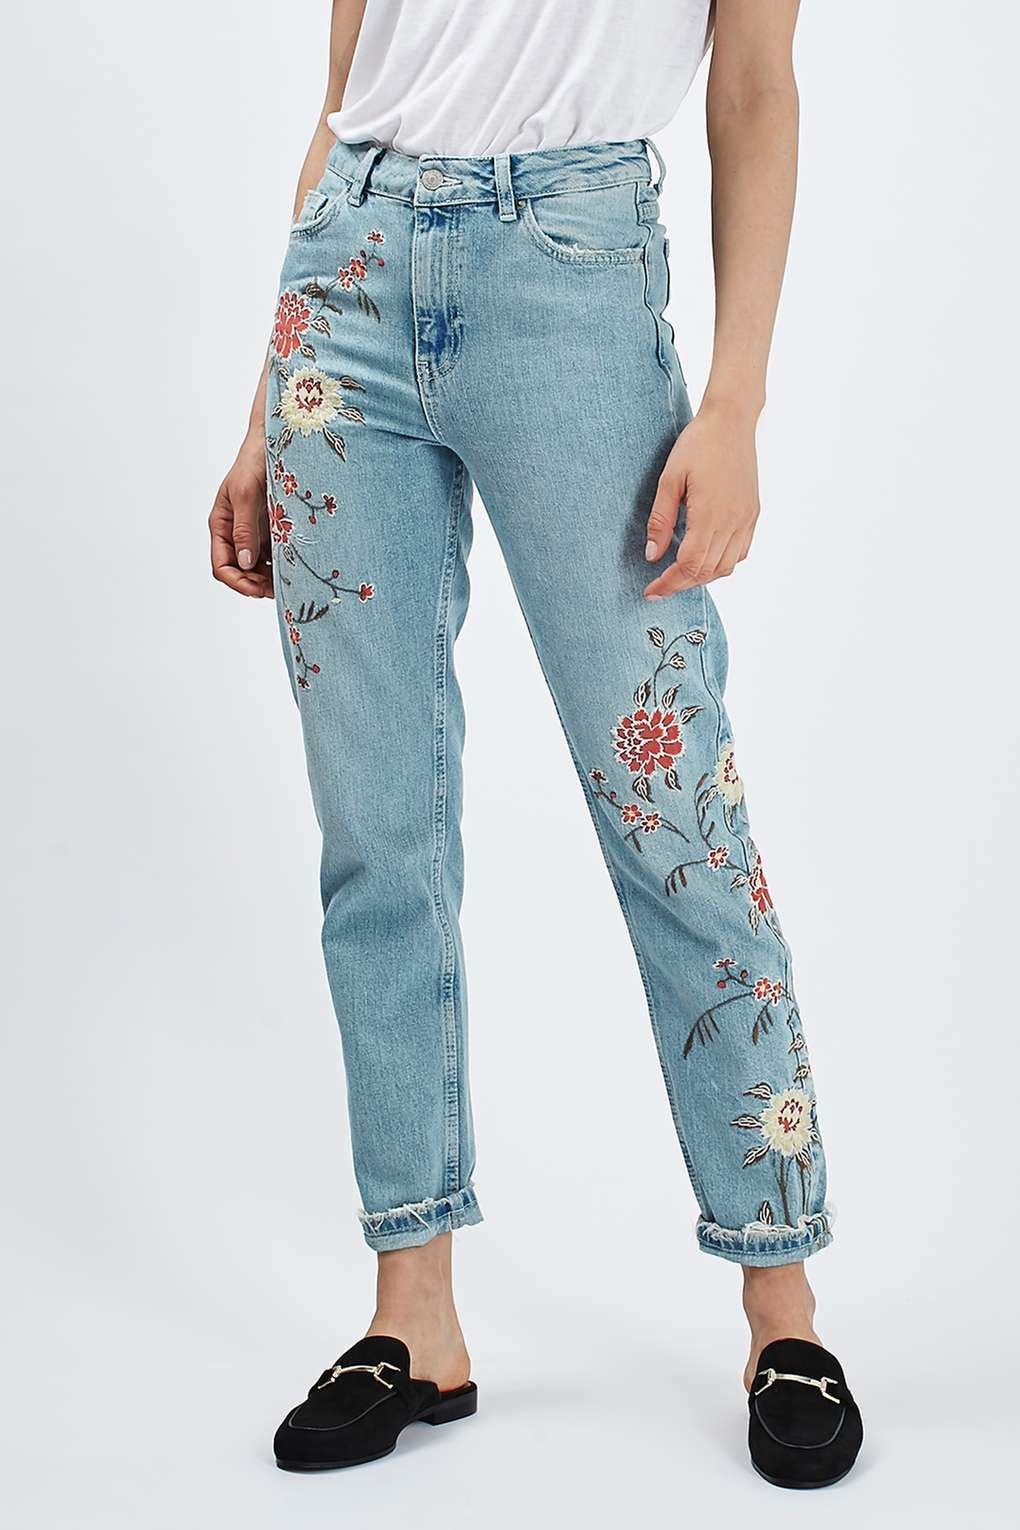 4b152a22cf42 MOTO Floral Embroidered Mom Jeans in 2019 | Clothes | Embroidered ...